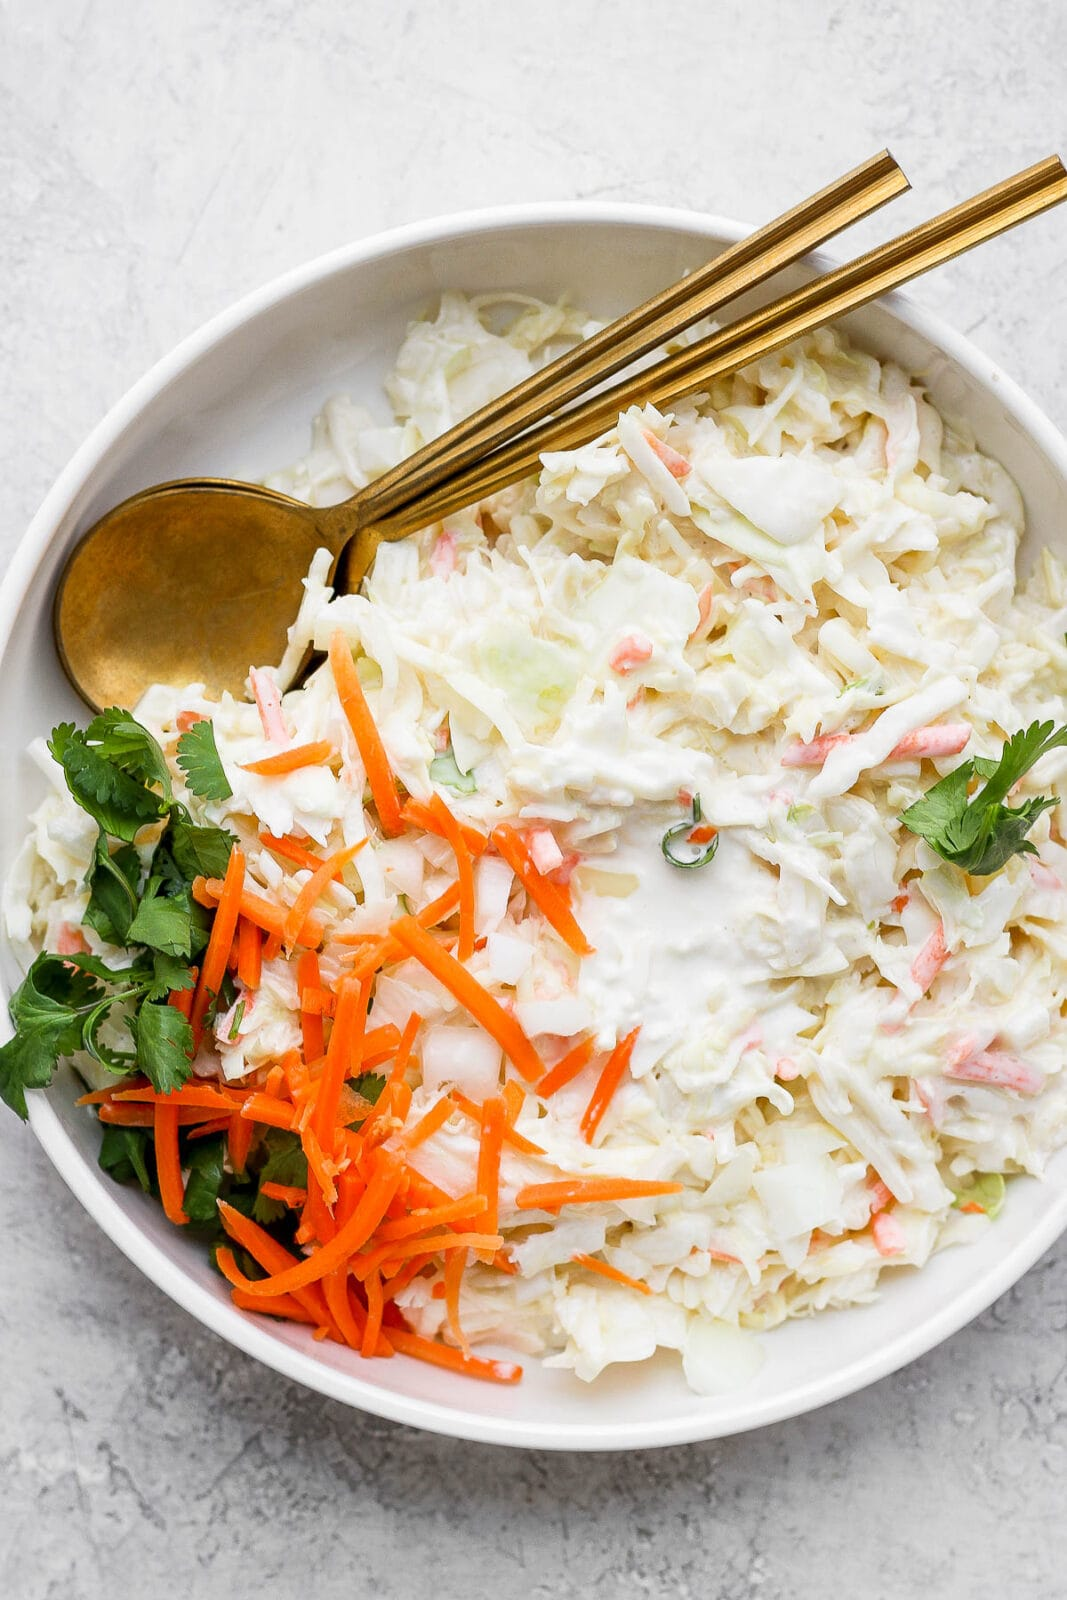 A bowl of creamy coleslaw and 2 spoons.